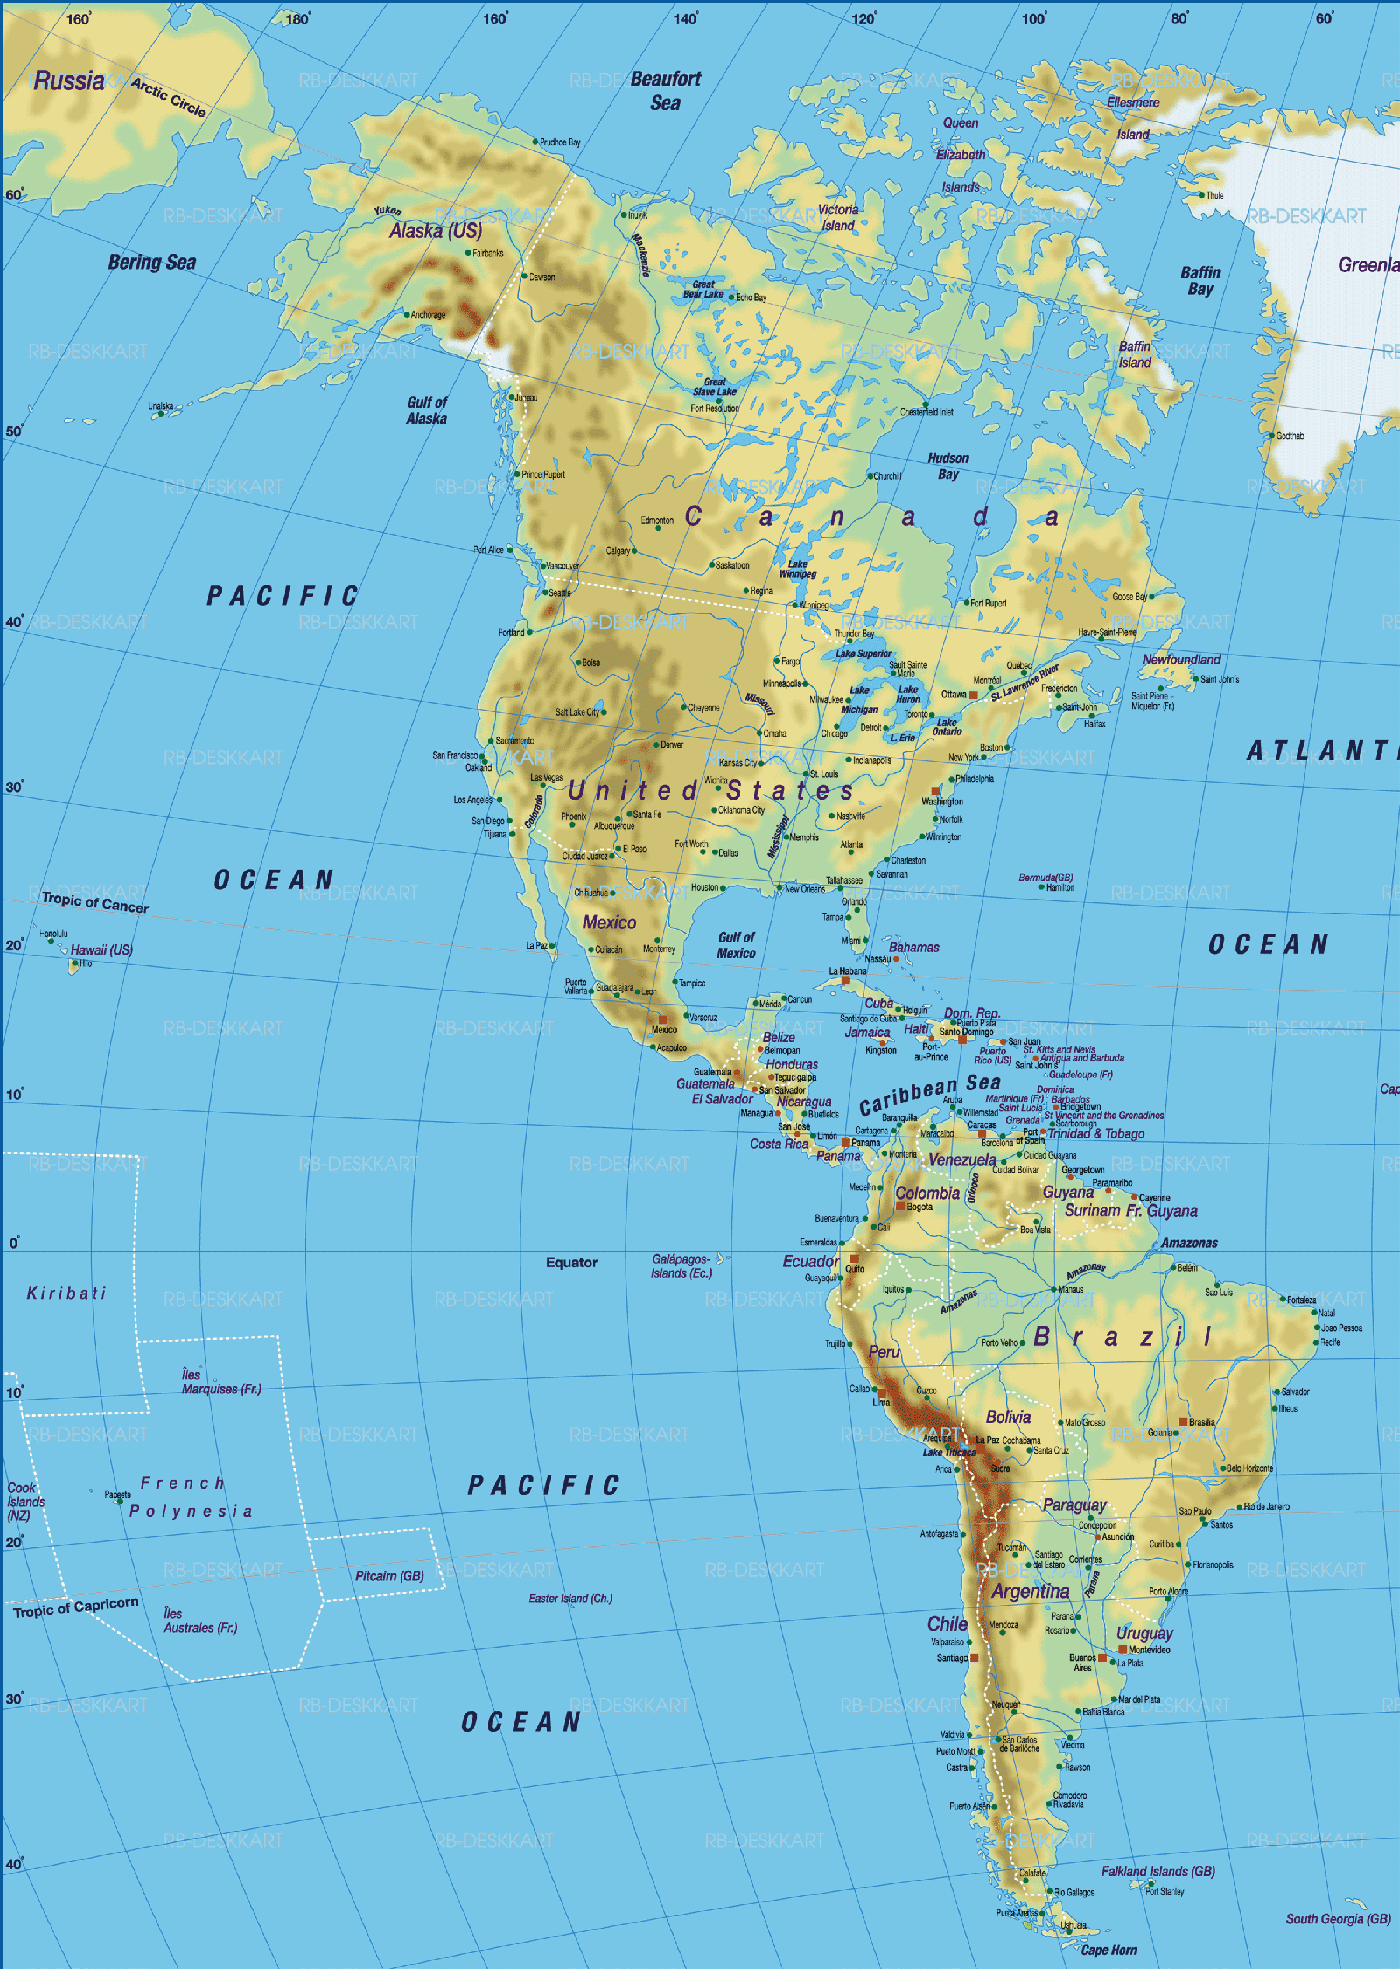 World And USA Maps For Sale Buy Maps Mapscom Physical Map Test - Physical map of western us